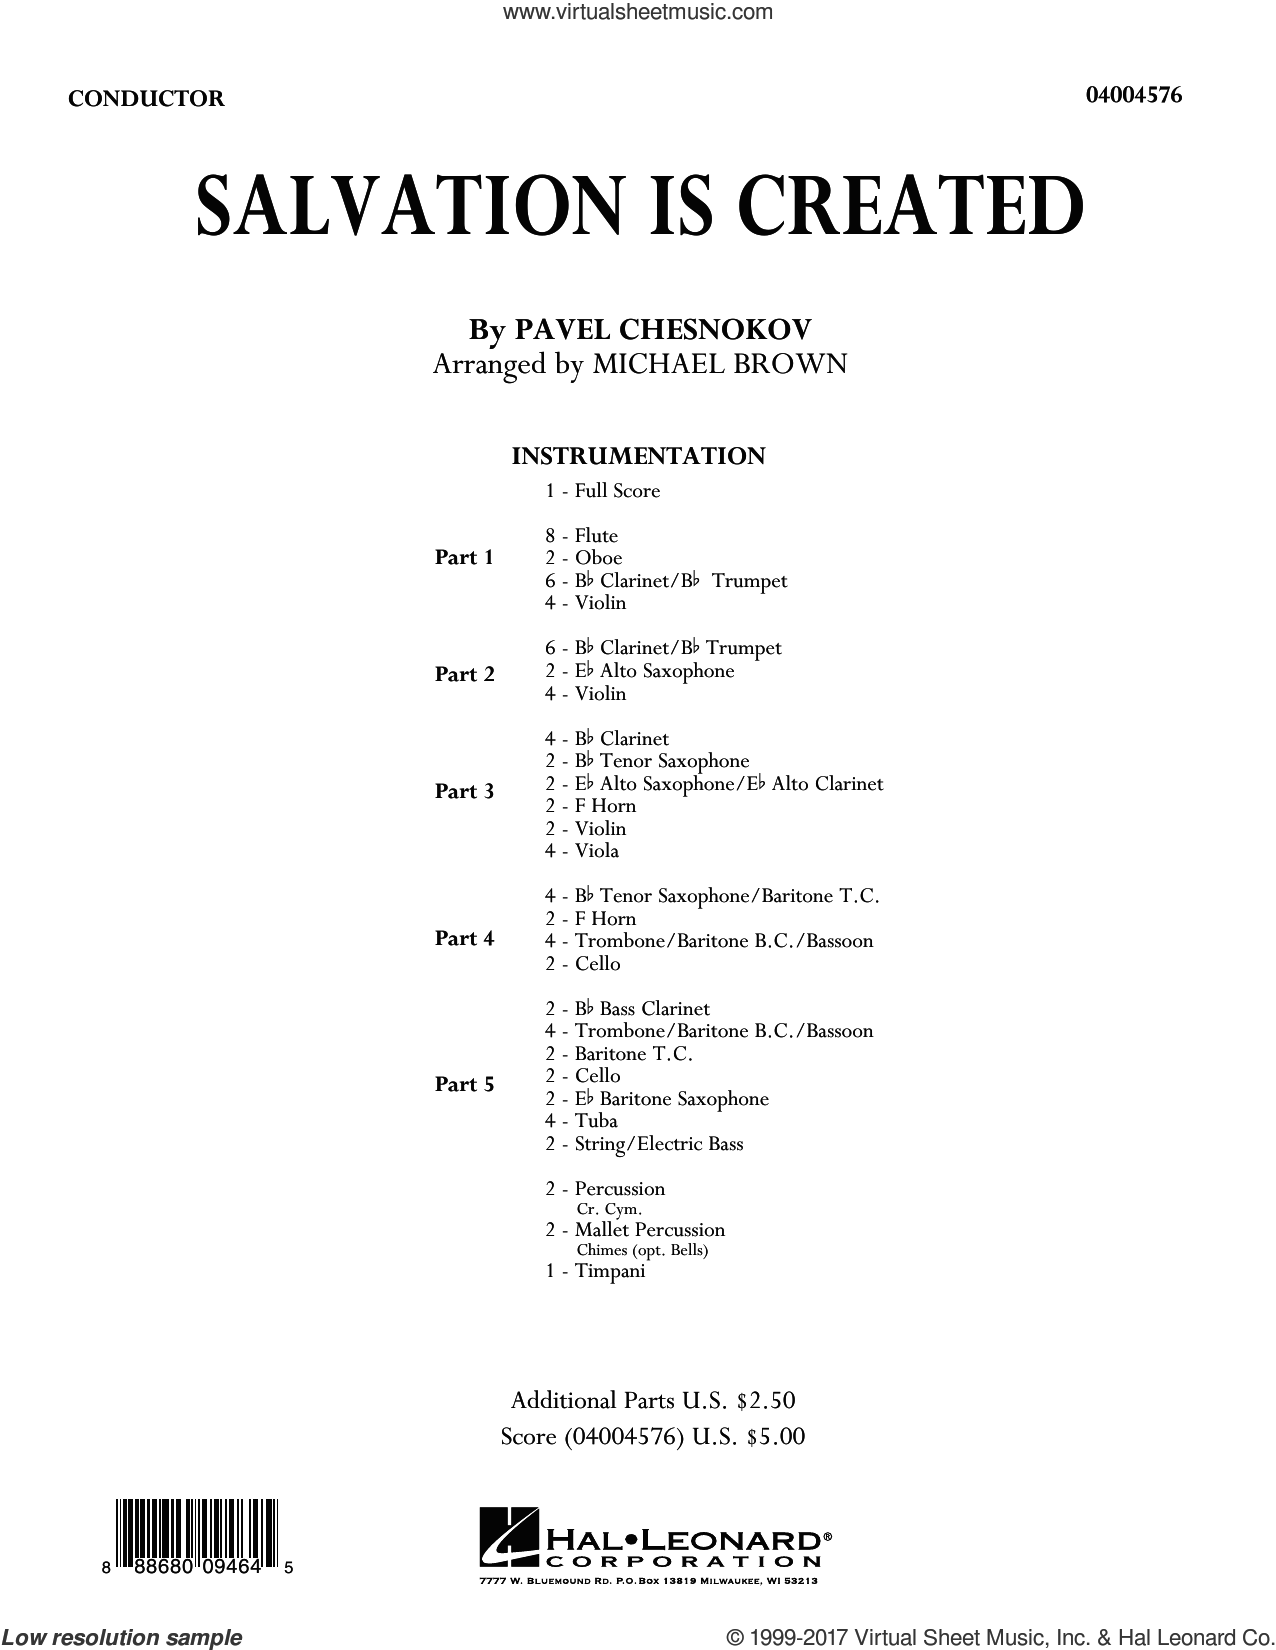 Salvation Is Created (COMPLETE) sheet music for concert band by Michael Brown, Pavel Chesnokov and Pavel Tschesnokoff, Christmas carol score, intermediate concert band. Score Image Preview.